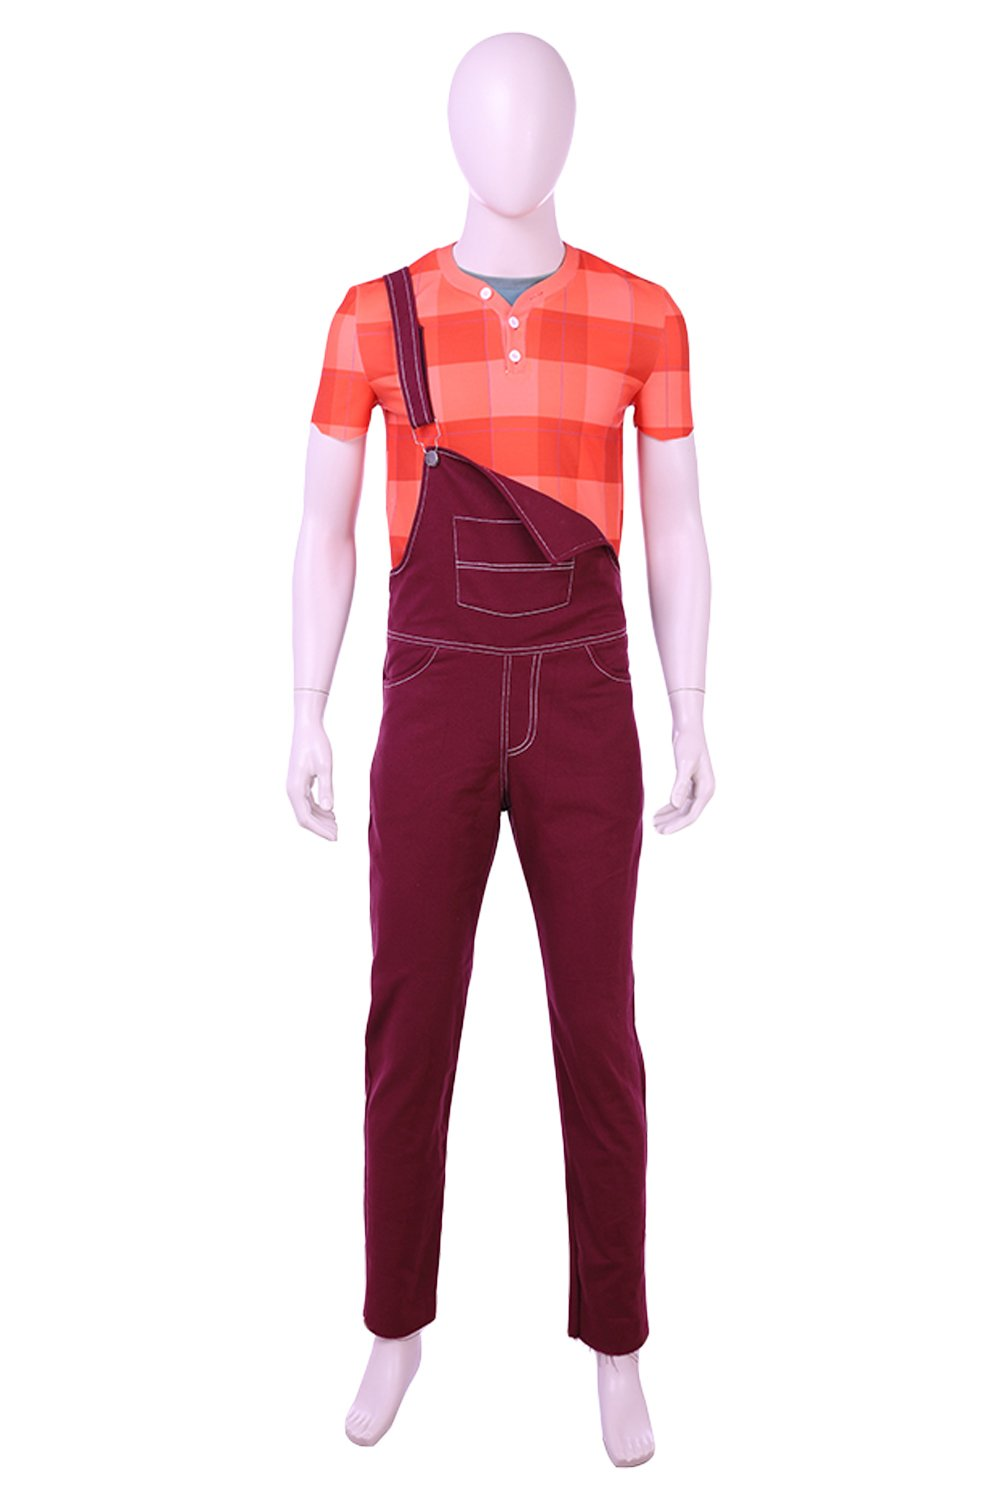 Ralph Breaks the Internet: Wreck-It Ralph 2 Wreck-It Ralph Cosplay Costume